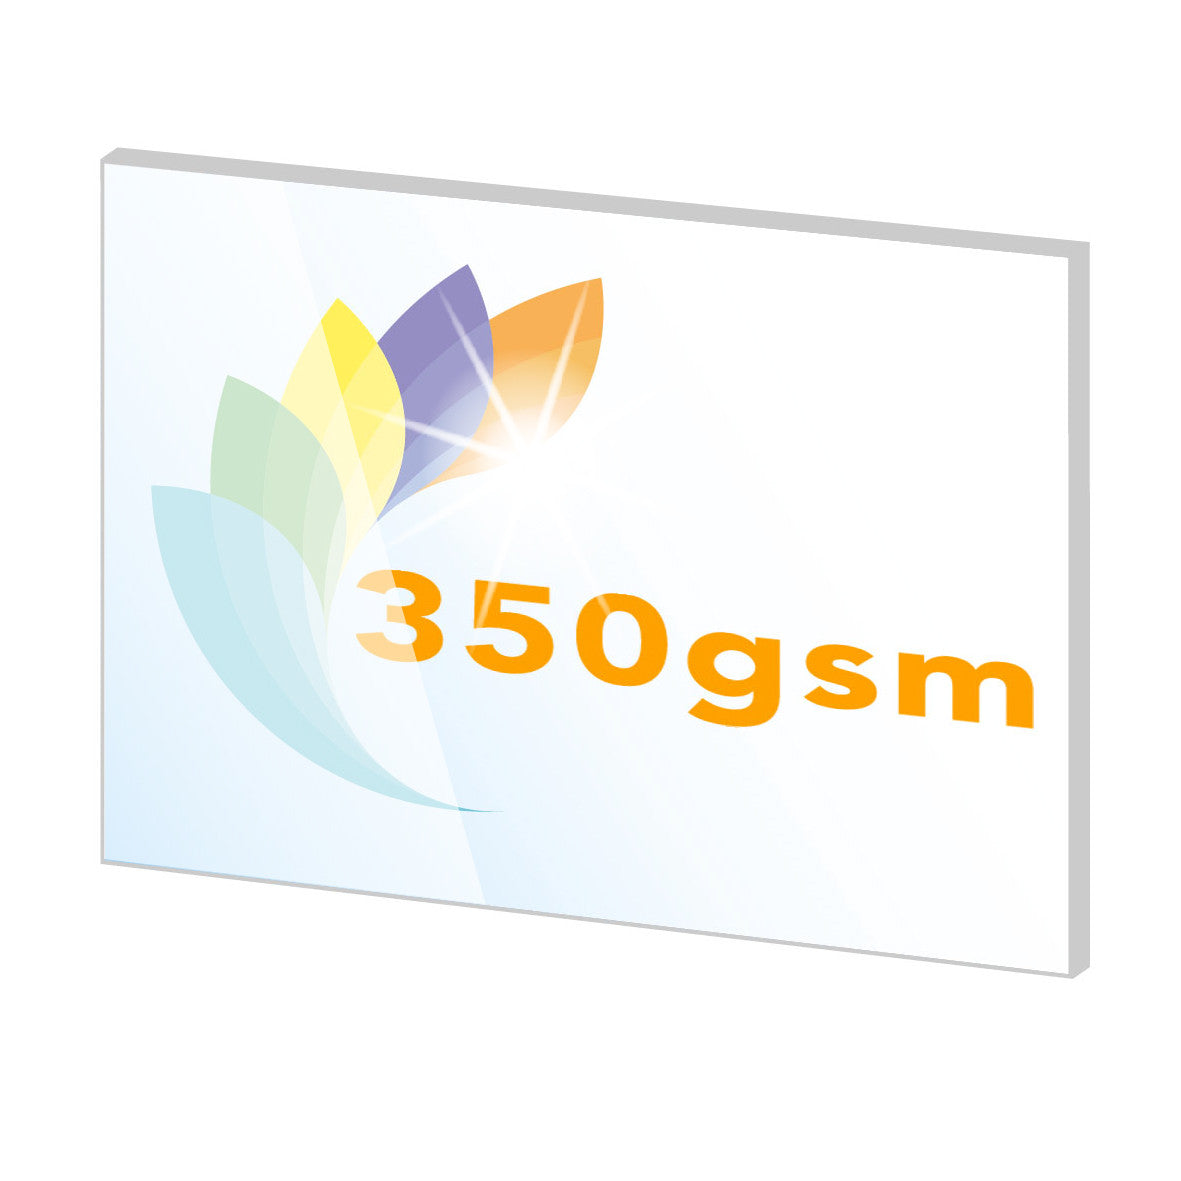 Single or double sided business cards 350gsm art gloss graffiti single or double sided business cards 350gsm art gloss reheart Gallery